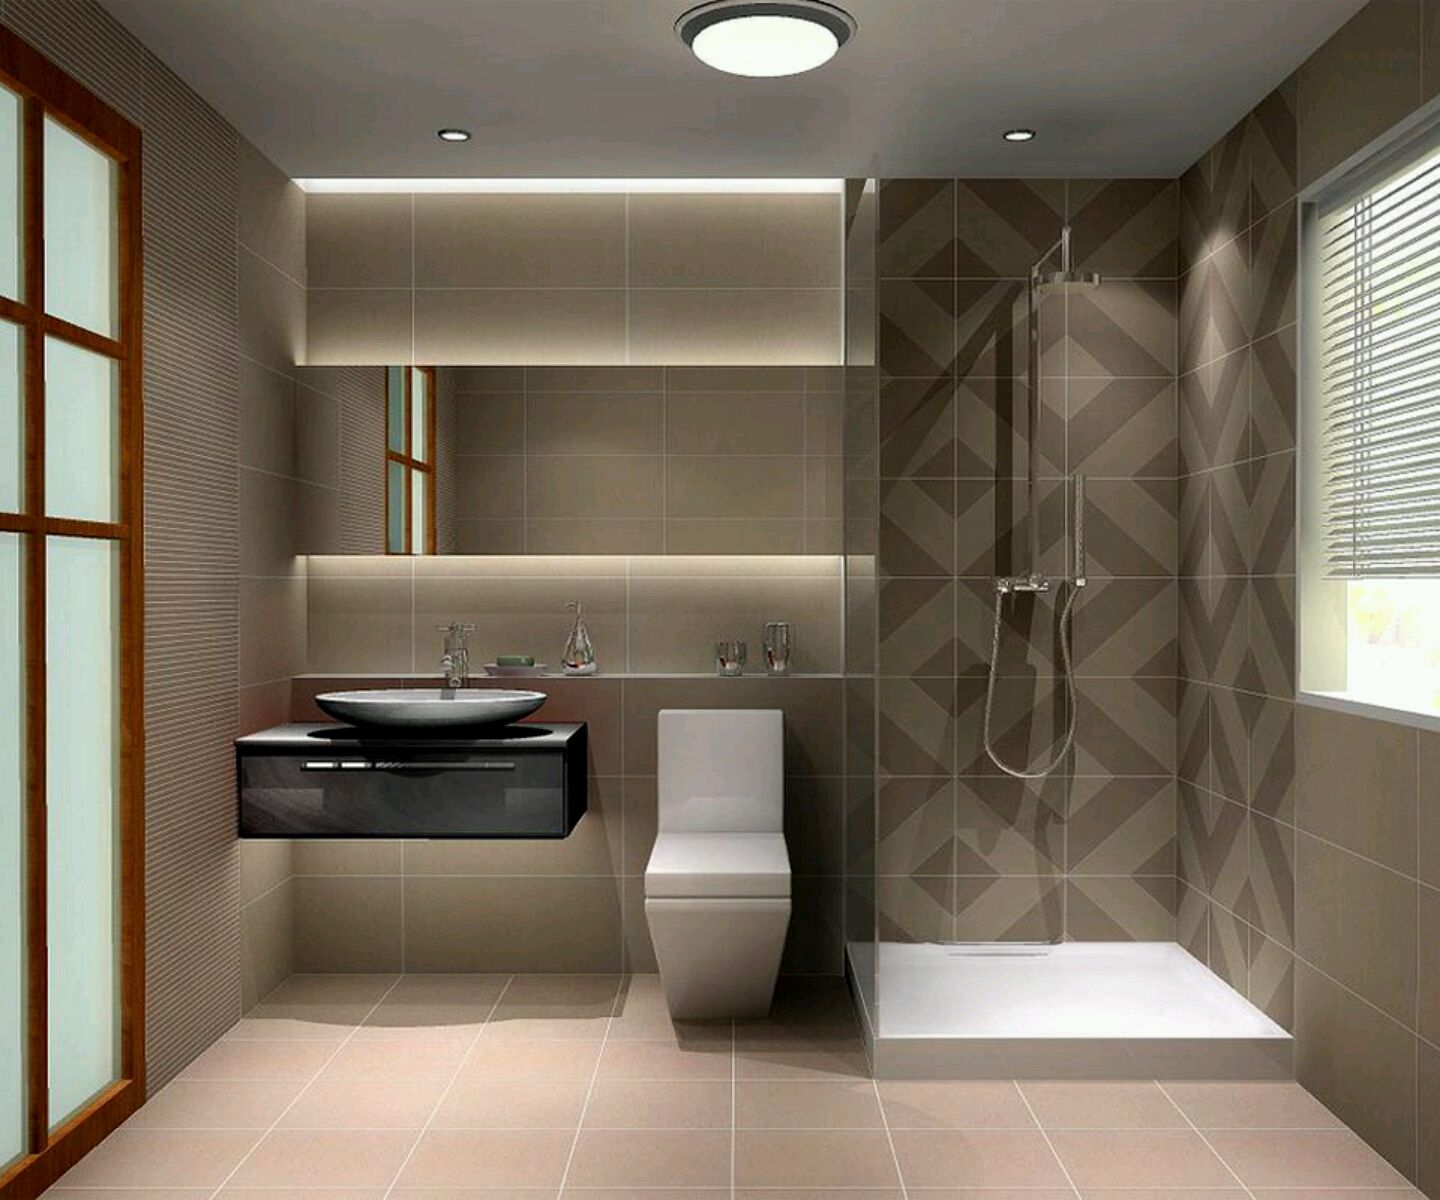 Superb Bathroom Modern Design Visualize Your Modern Bathroom Design With Largest Home Design Picture Inspirations Pitcheantrous